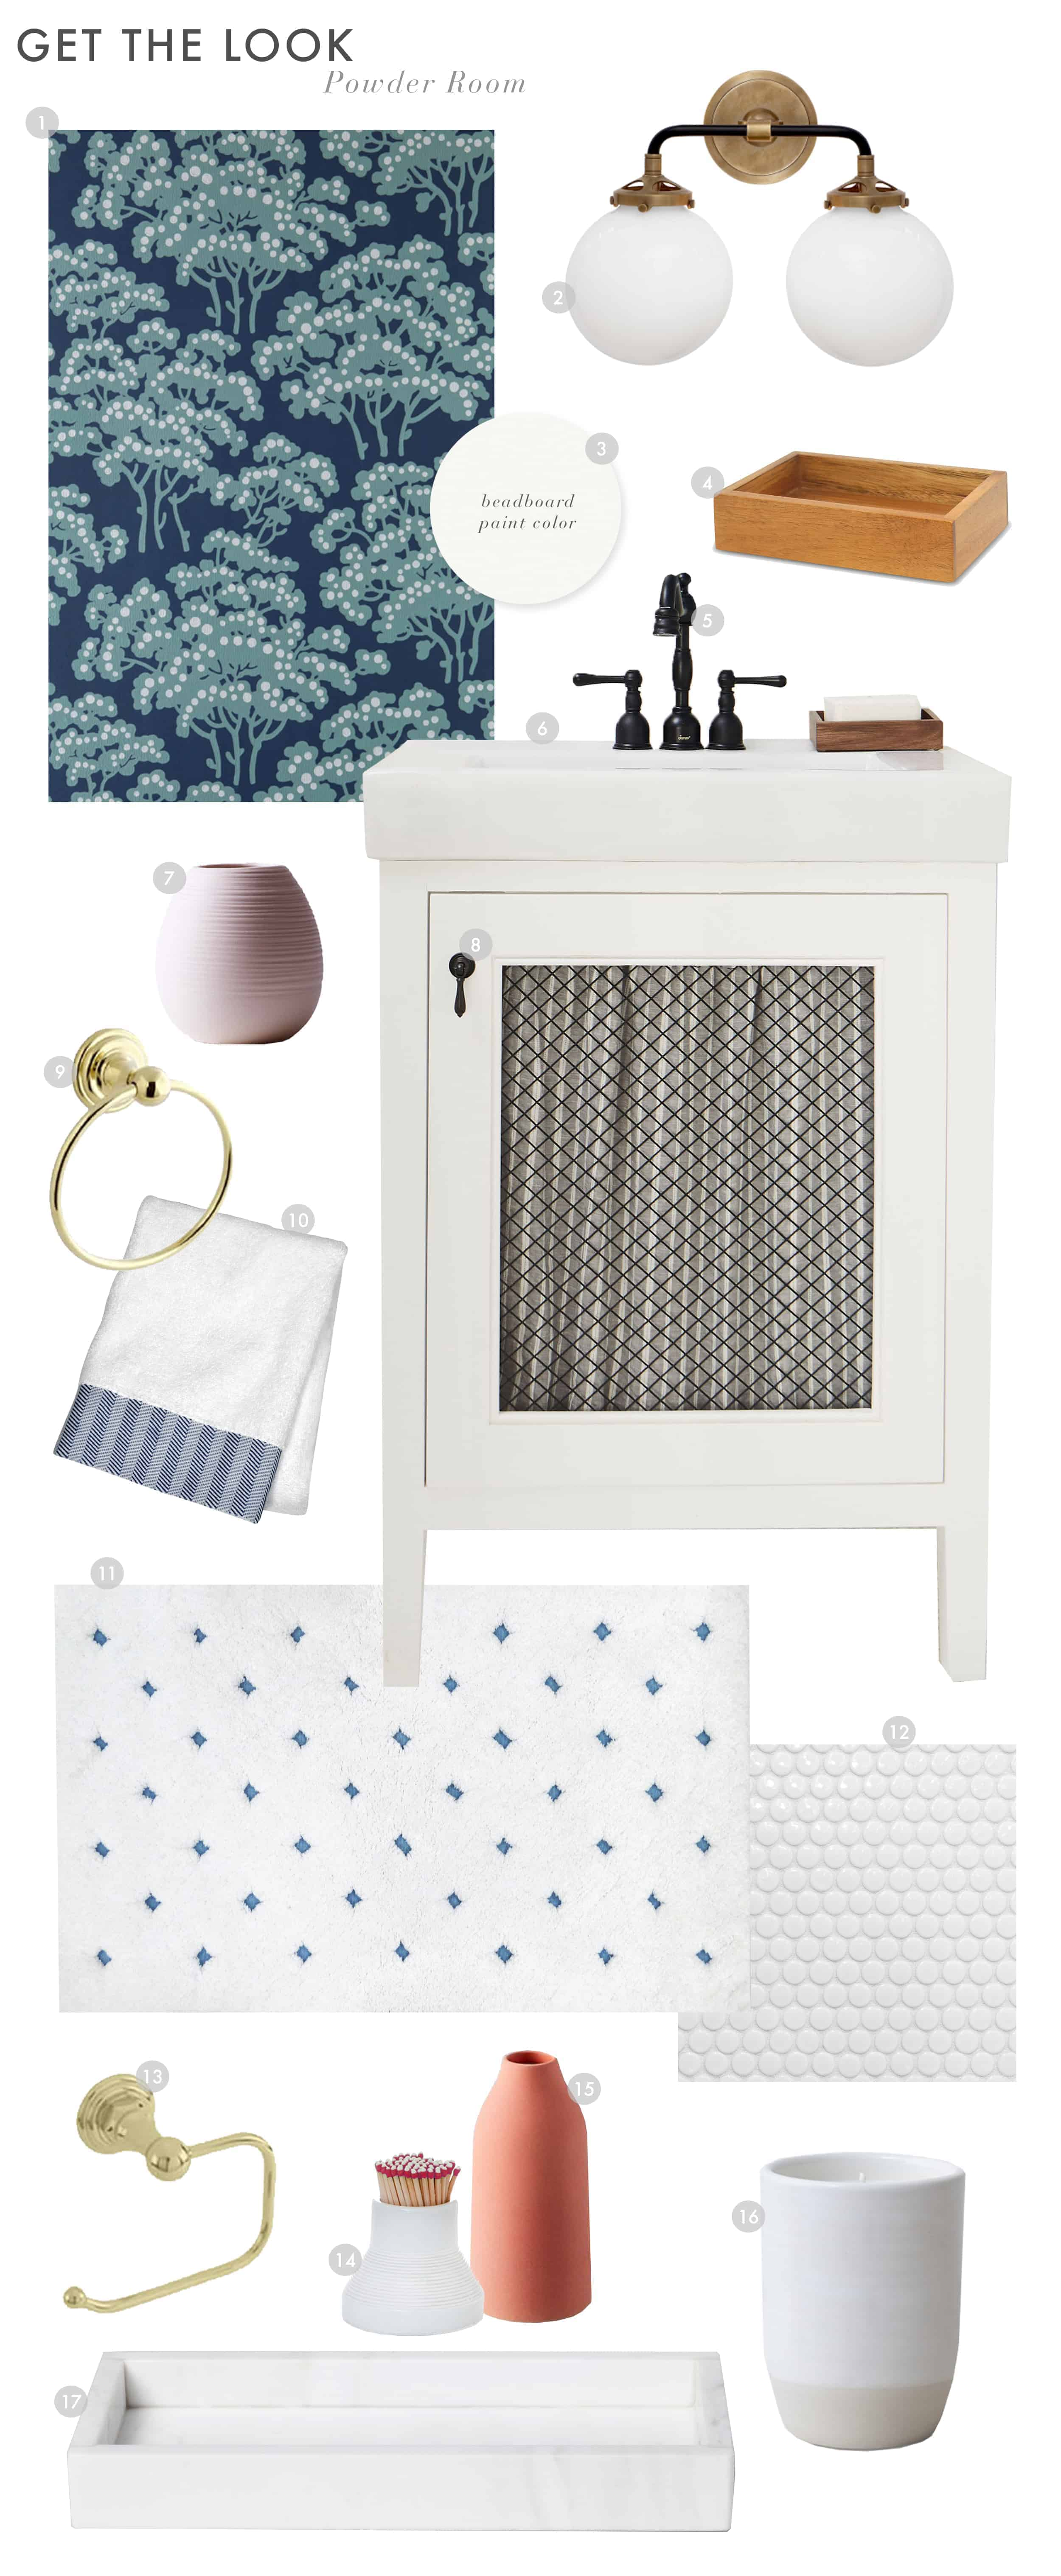 Emily Henderson Powder Room Reveal Get The Look2